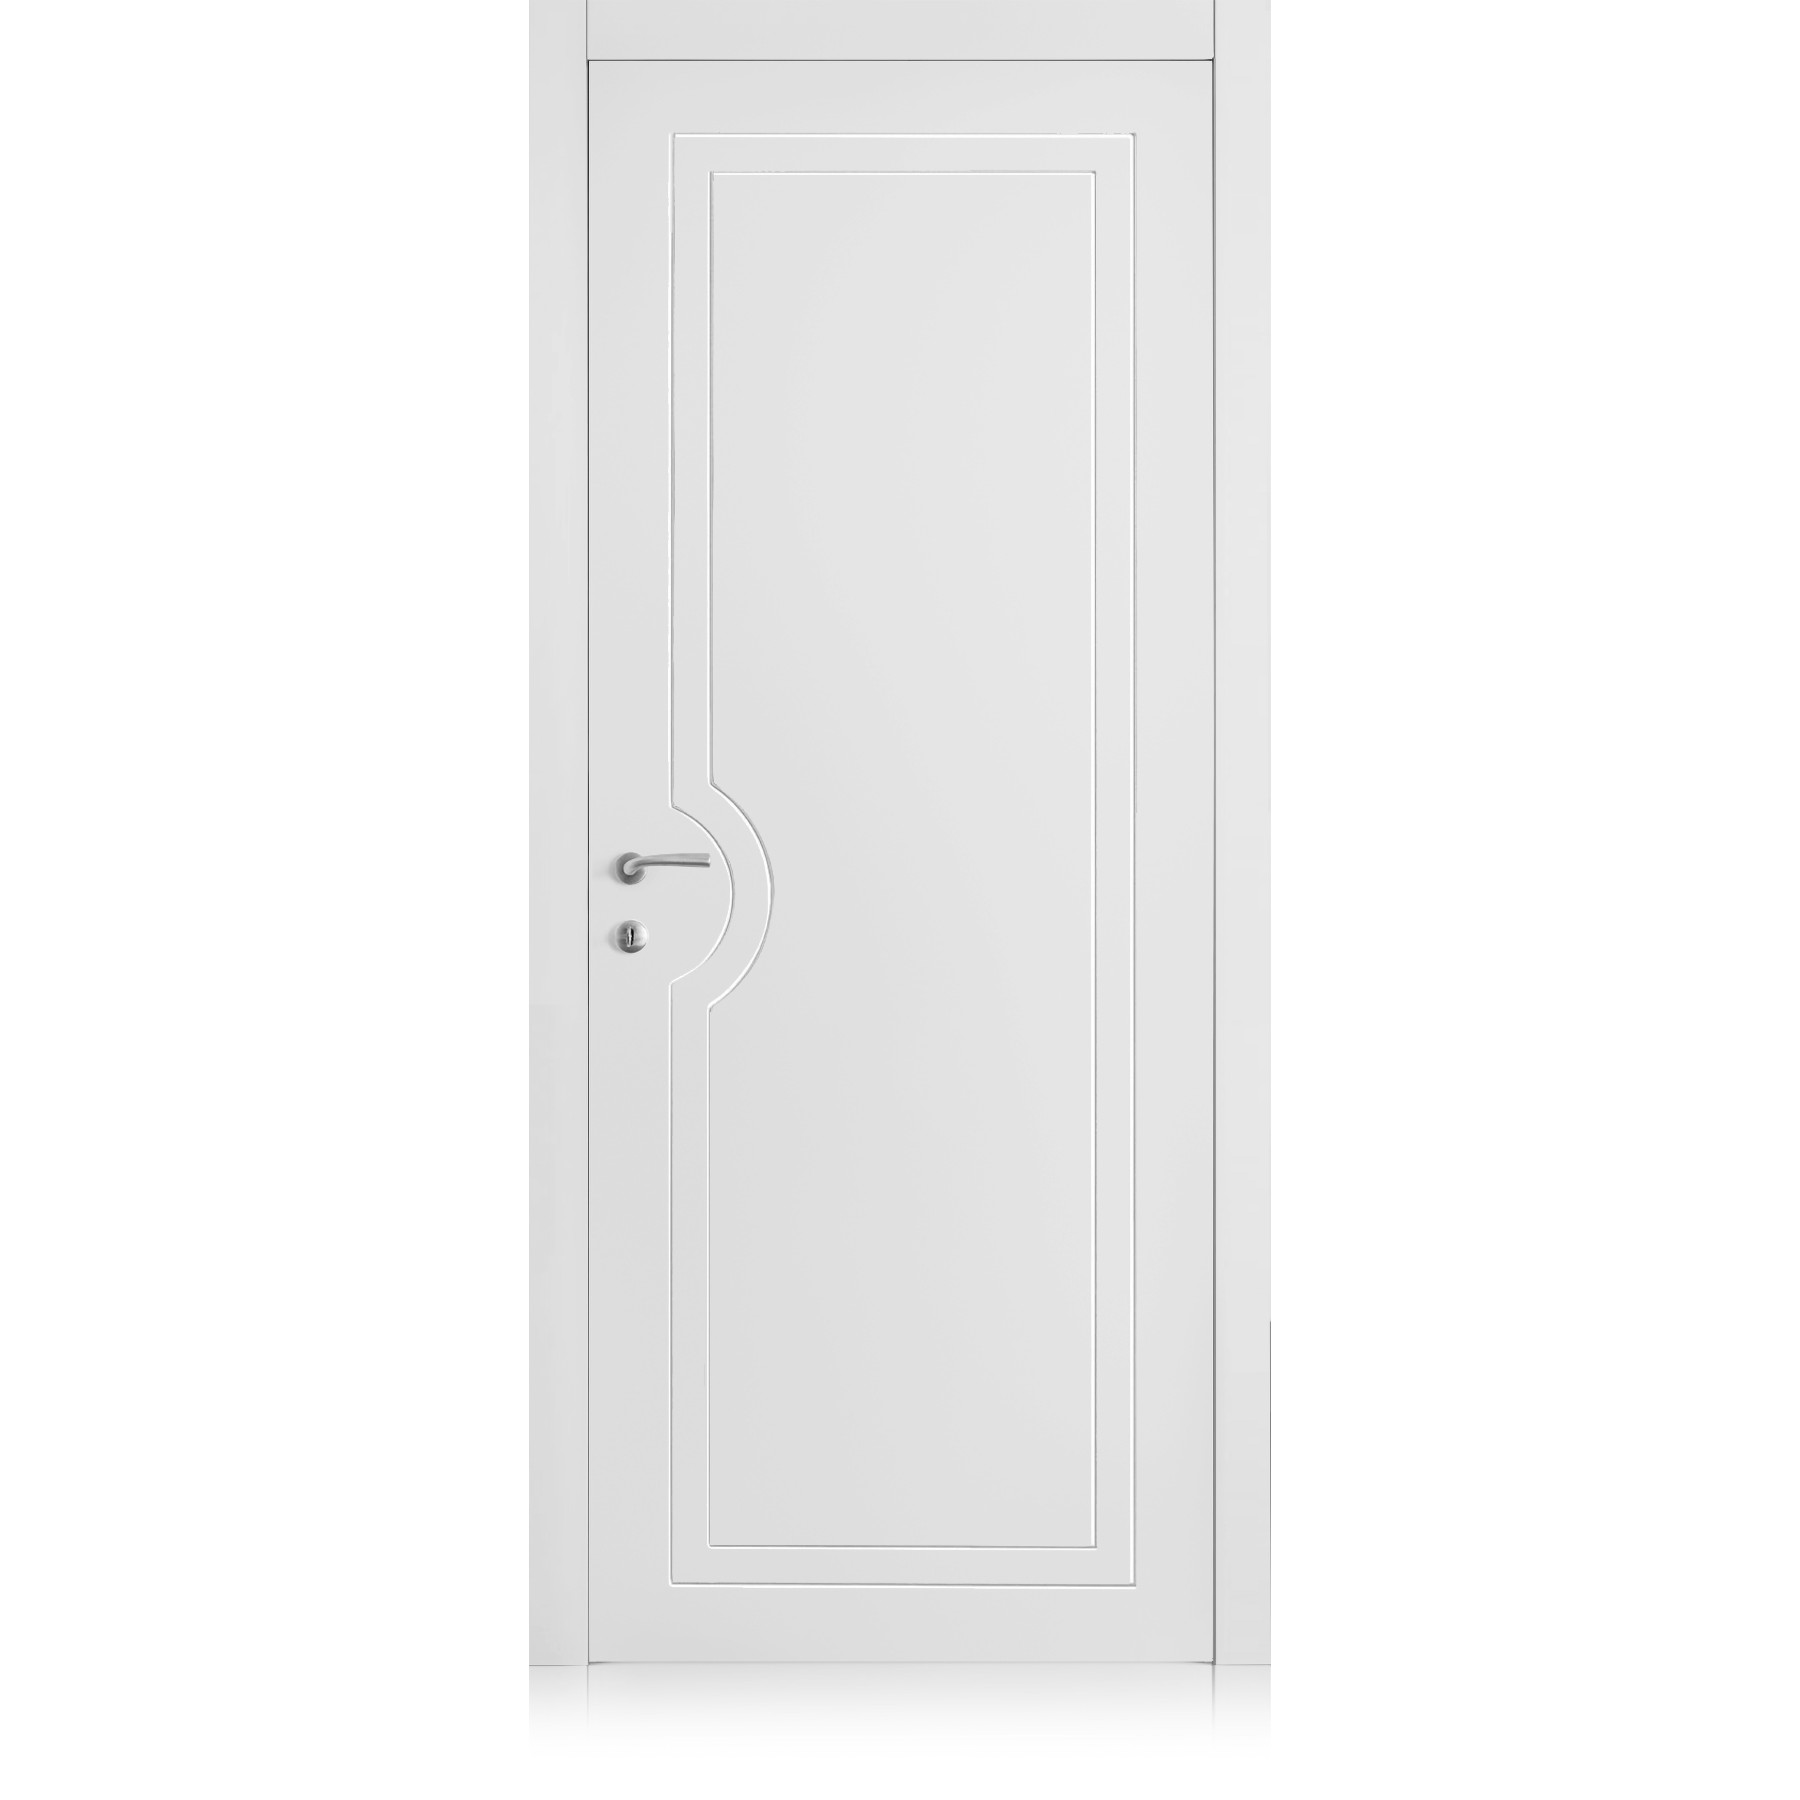 Yncisa / 1 bianco optical door